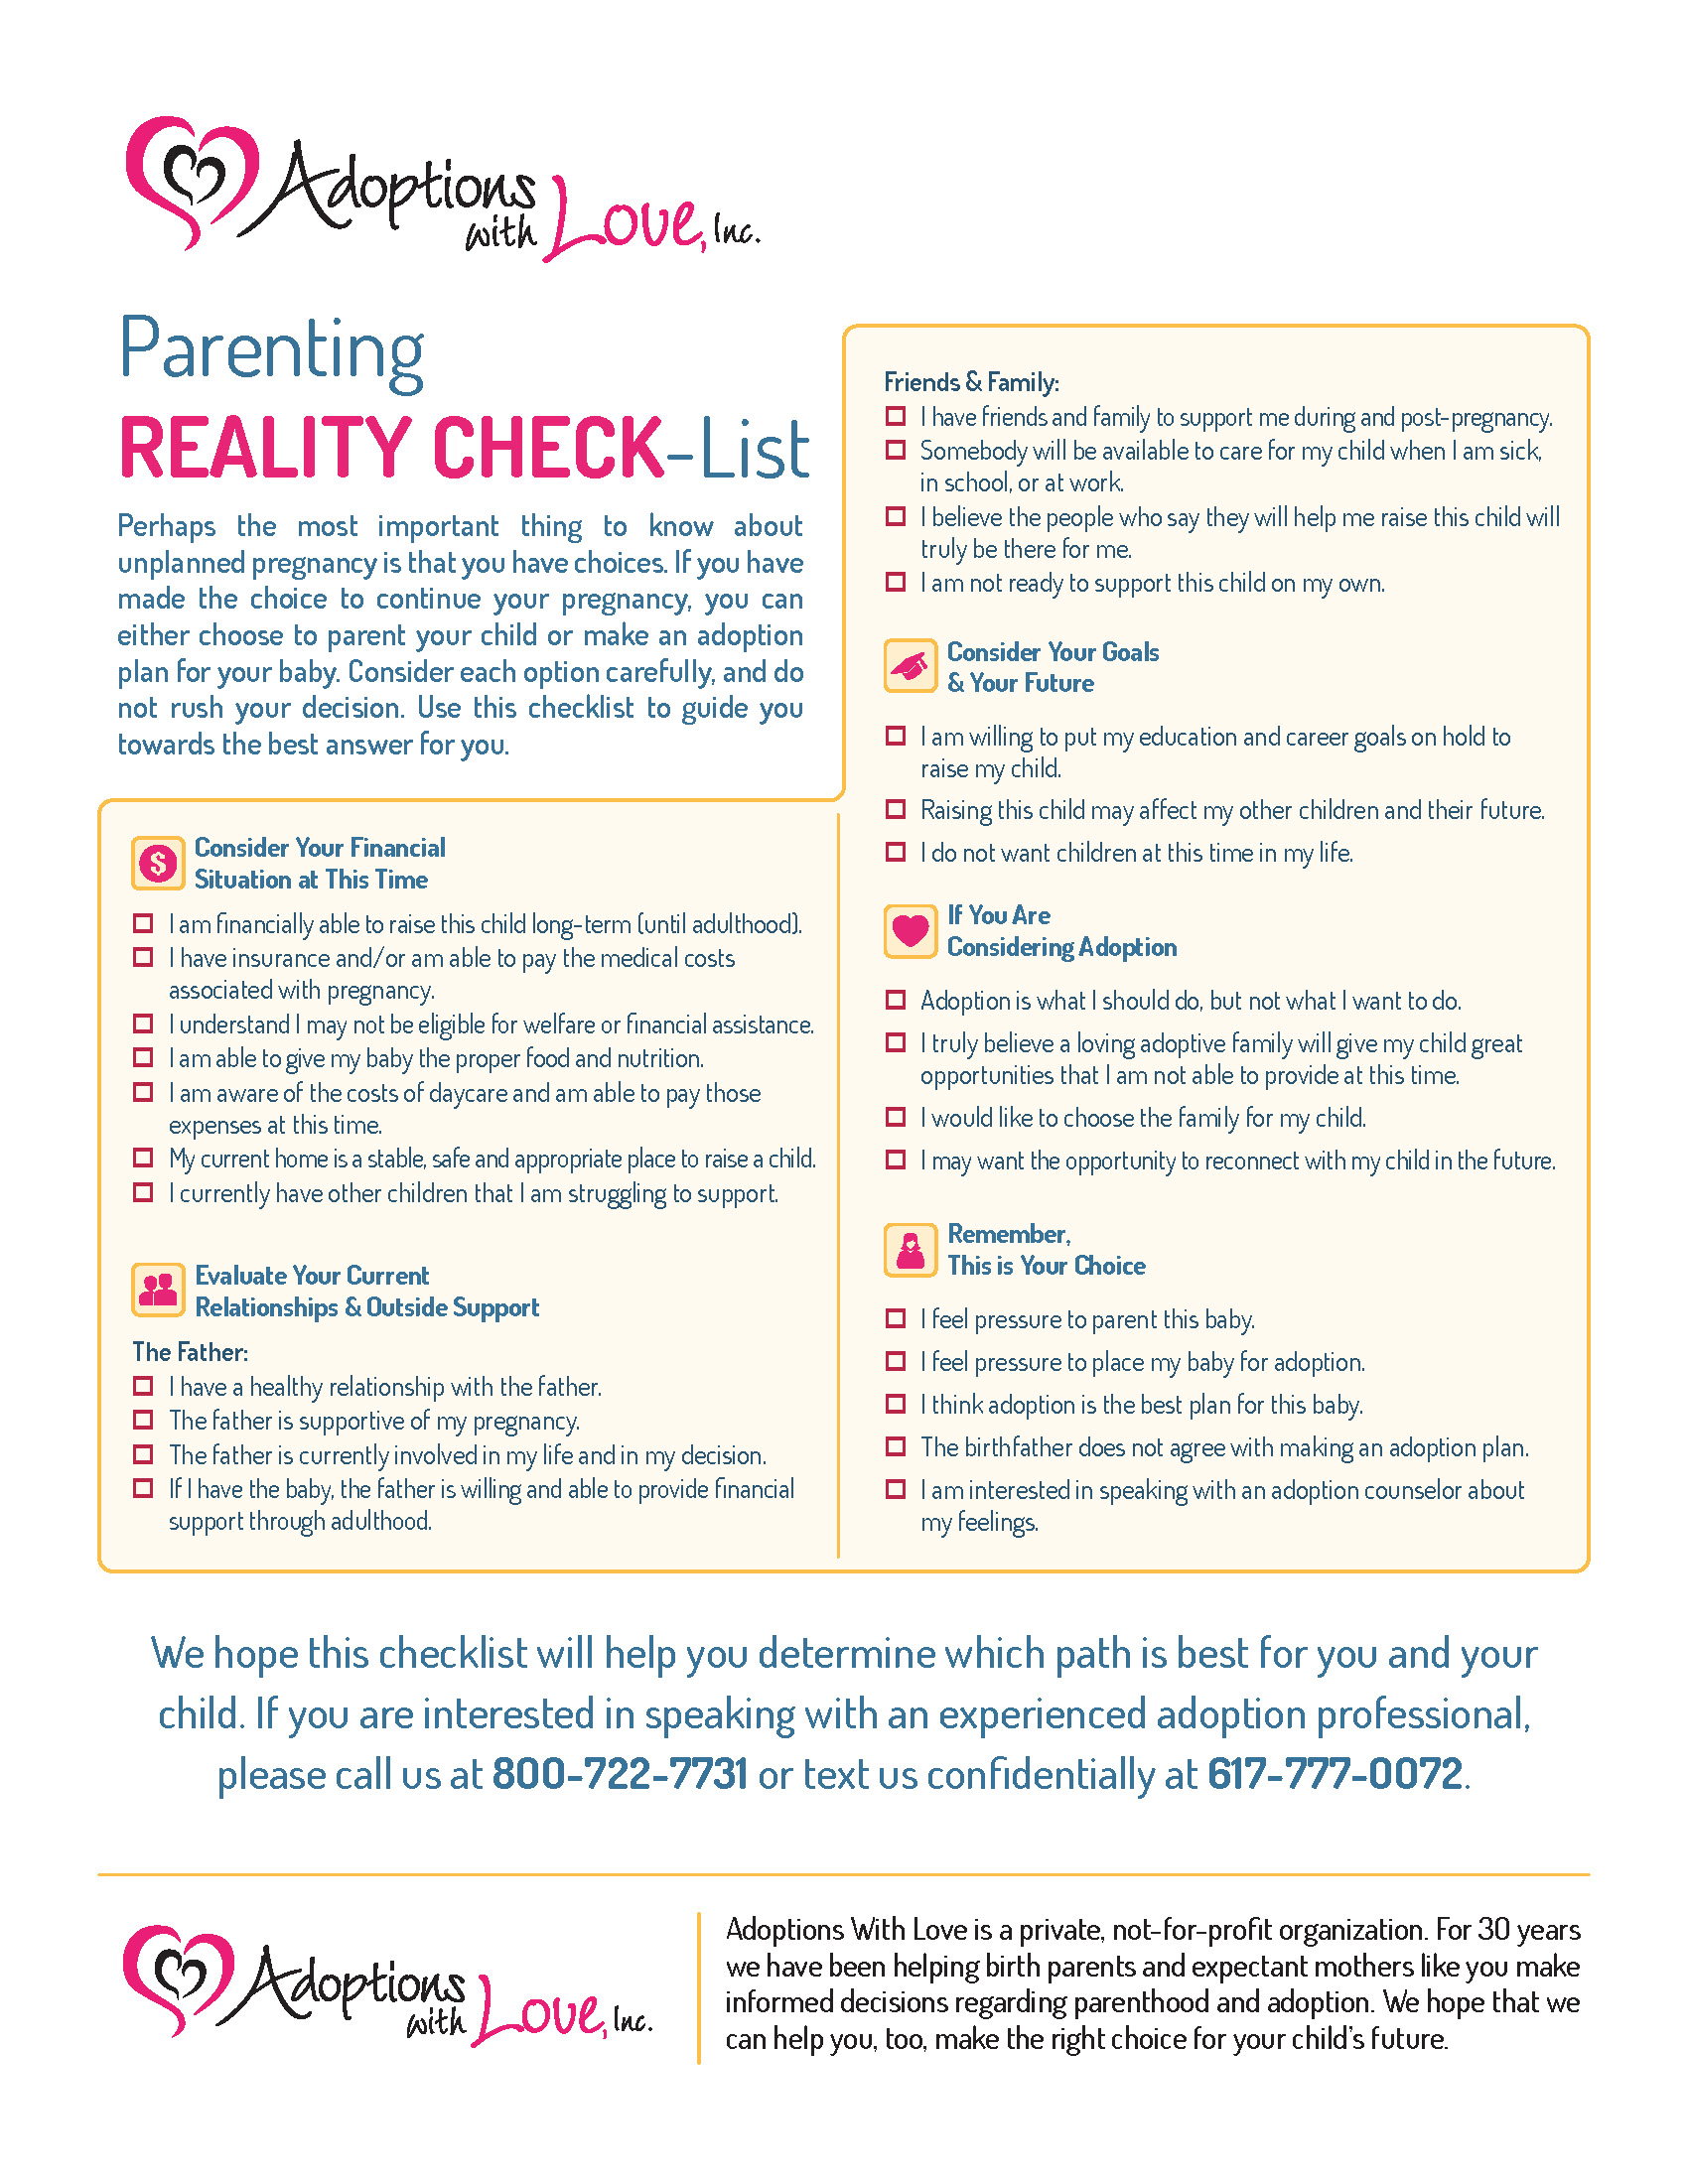 Parenting Reality Checklist | Adoptions With Love